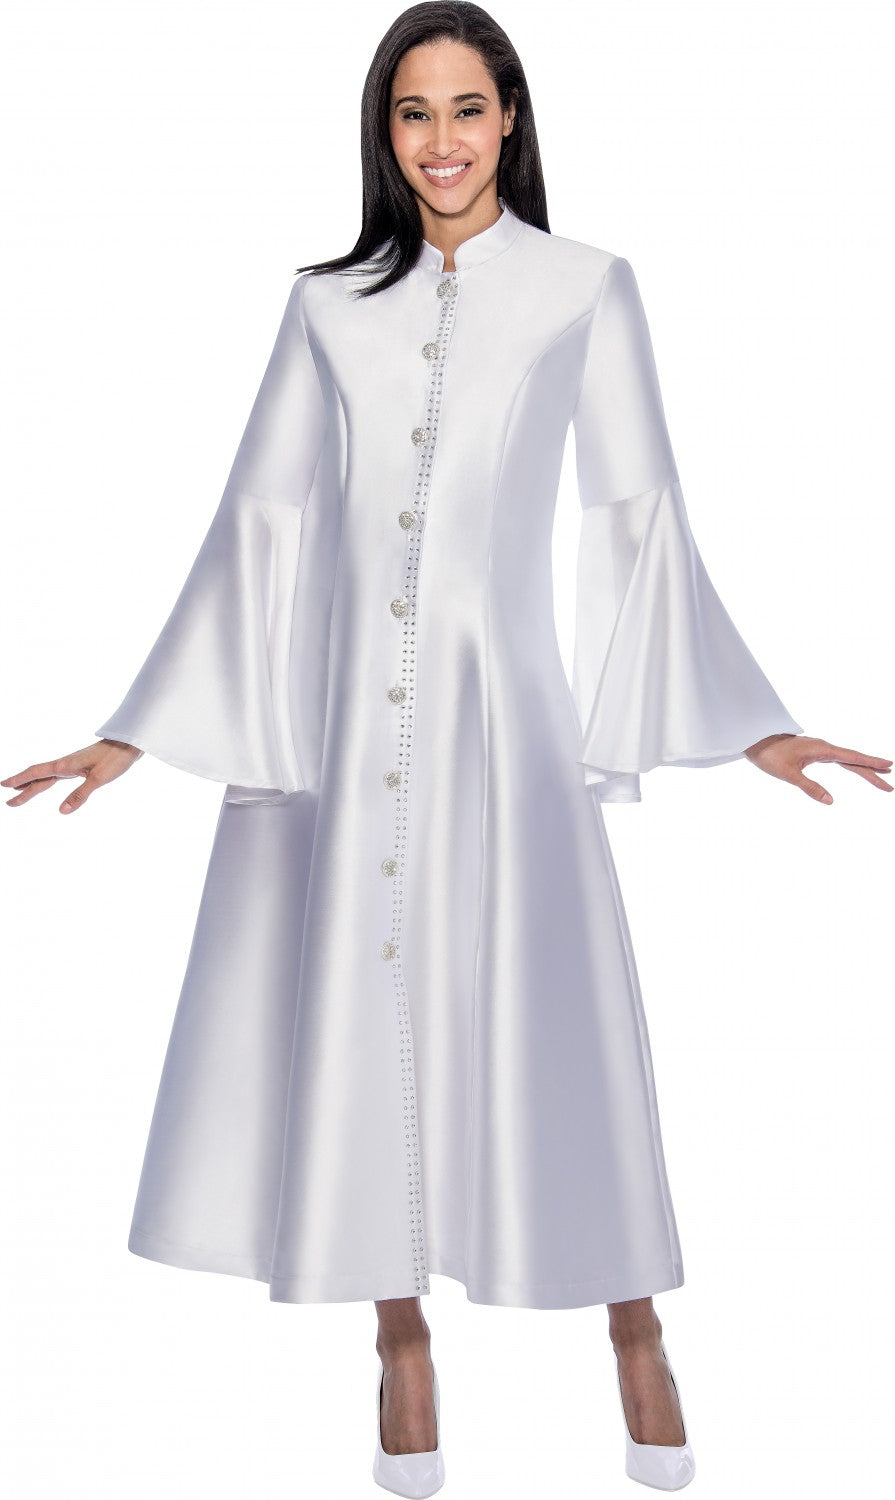 Regal Robes RR9031-White - Church Suits For Less